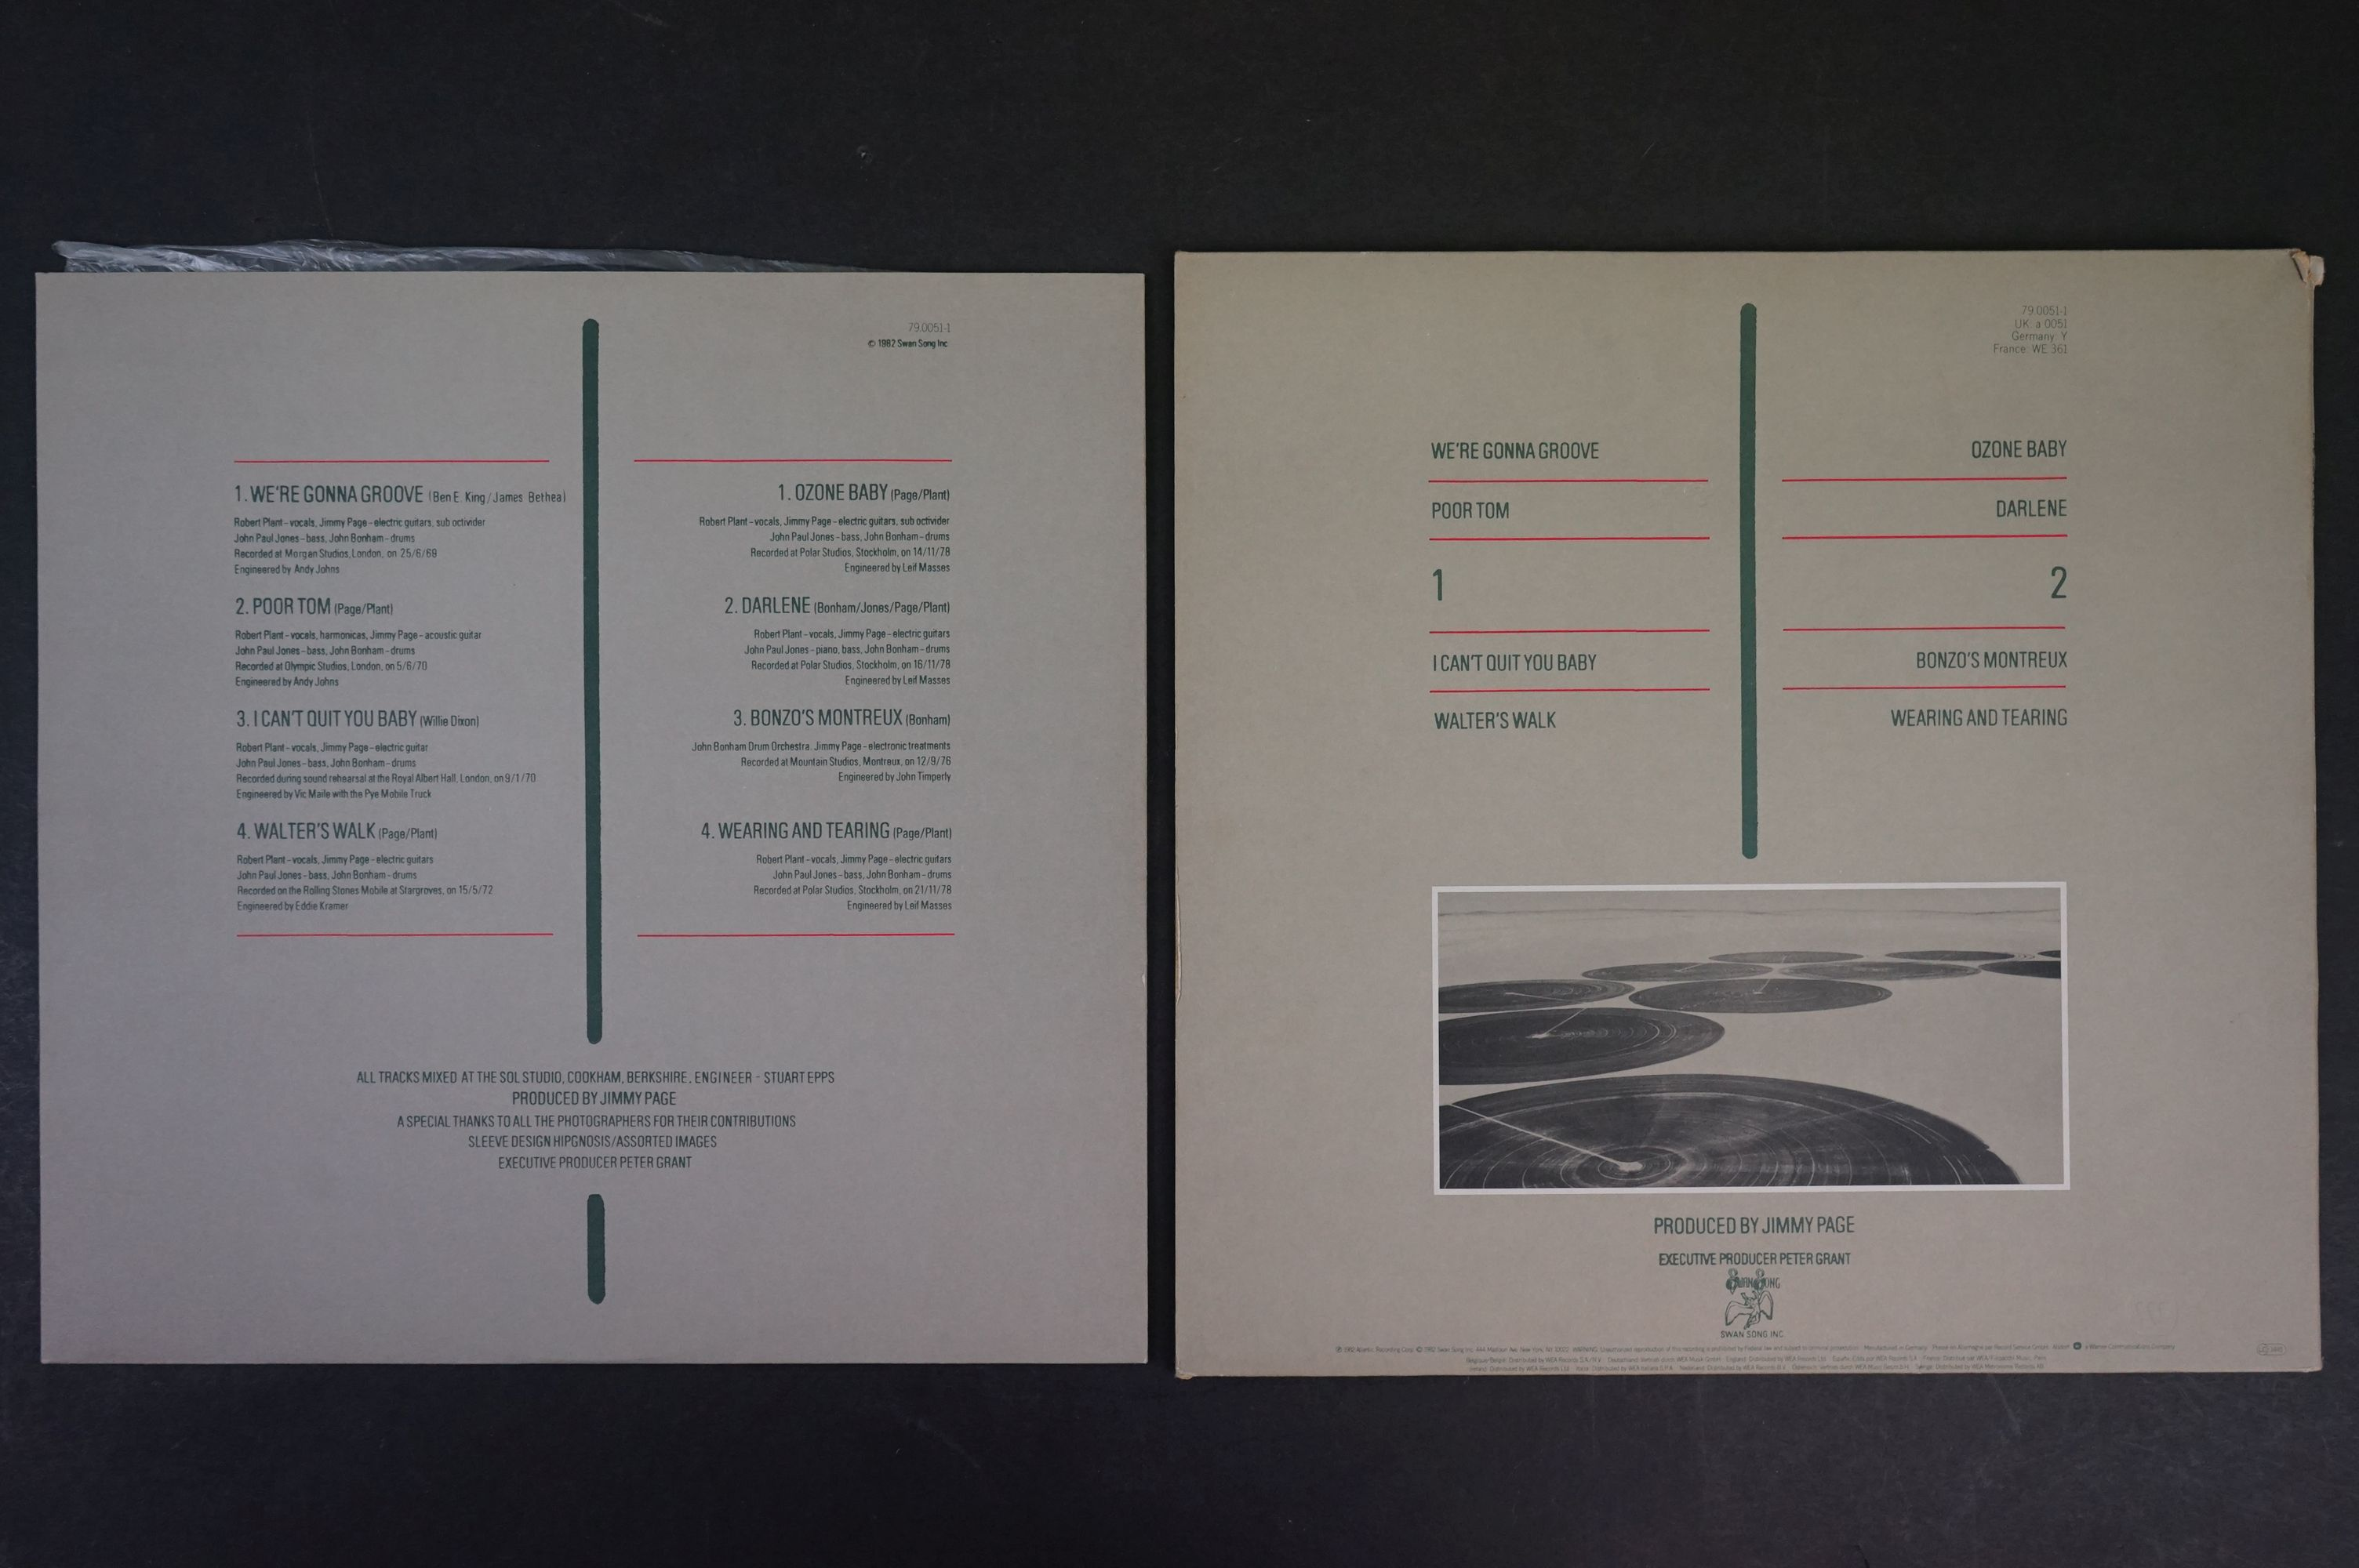 Vinyl - Six Led Zeppelin LPs to include In Through the Outdoor (cover D) SSK59410, Coda 790051, 2 - Image 9 of 17